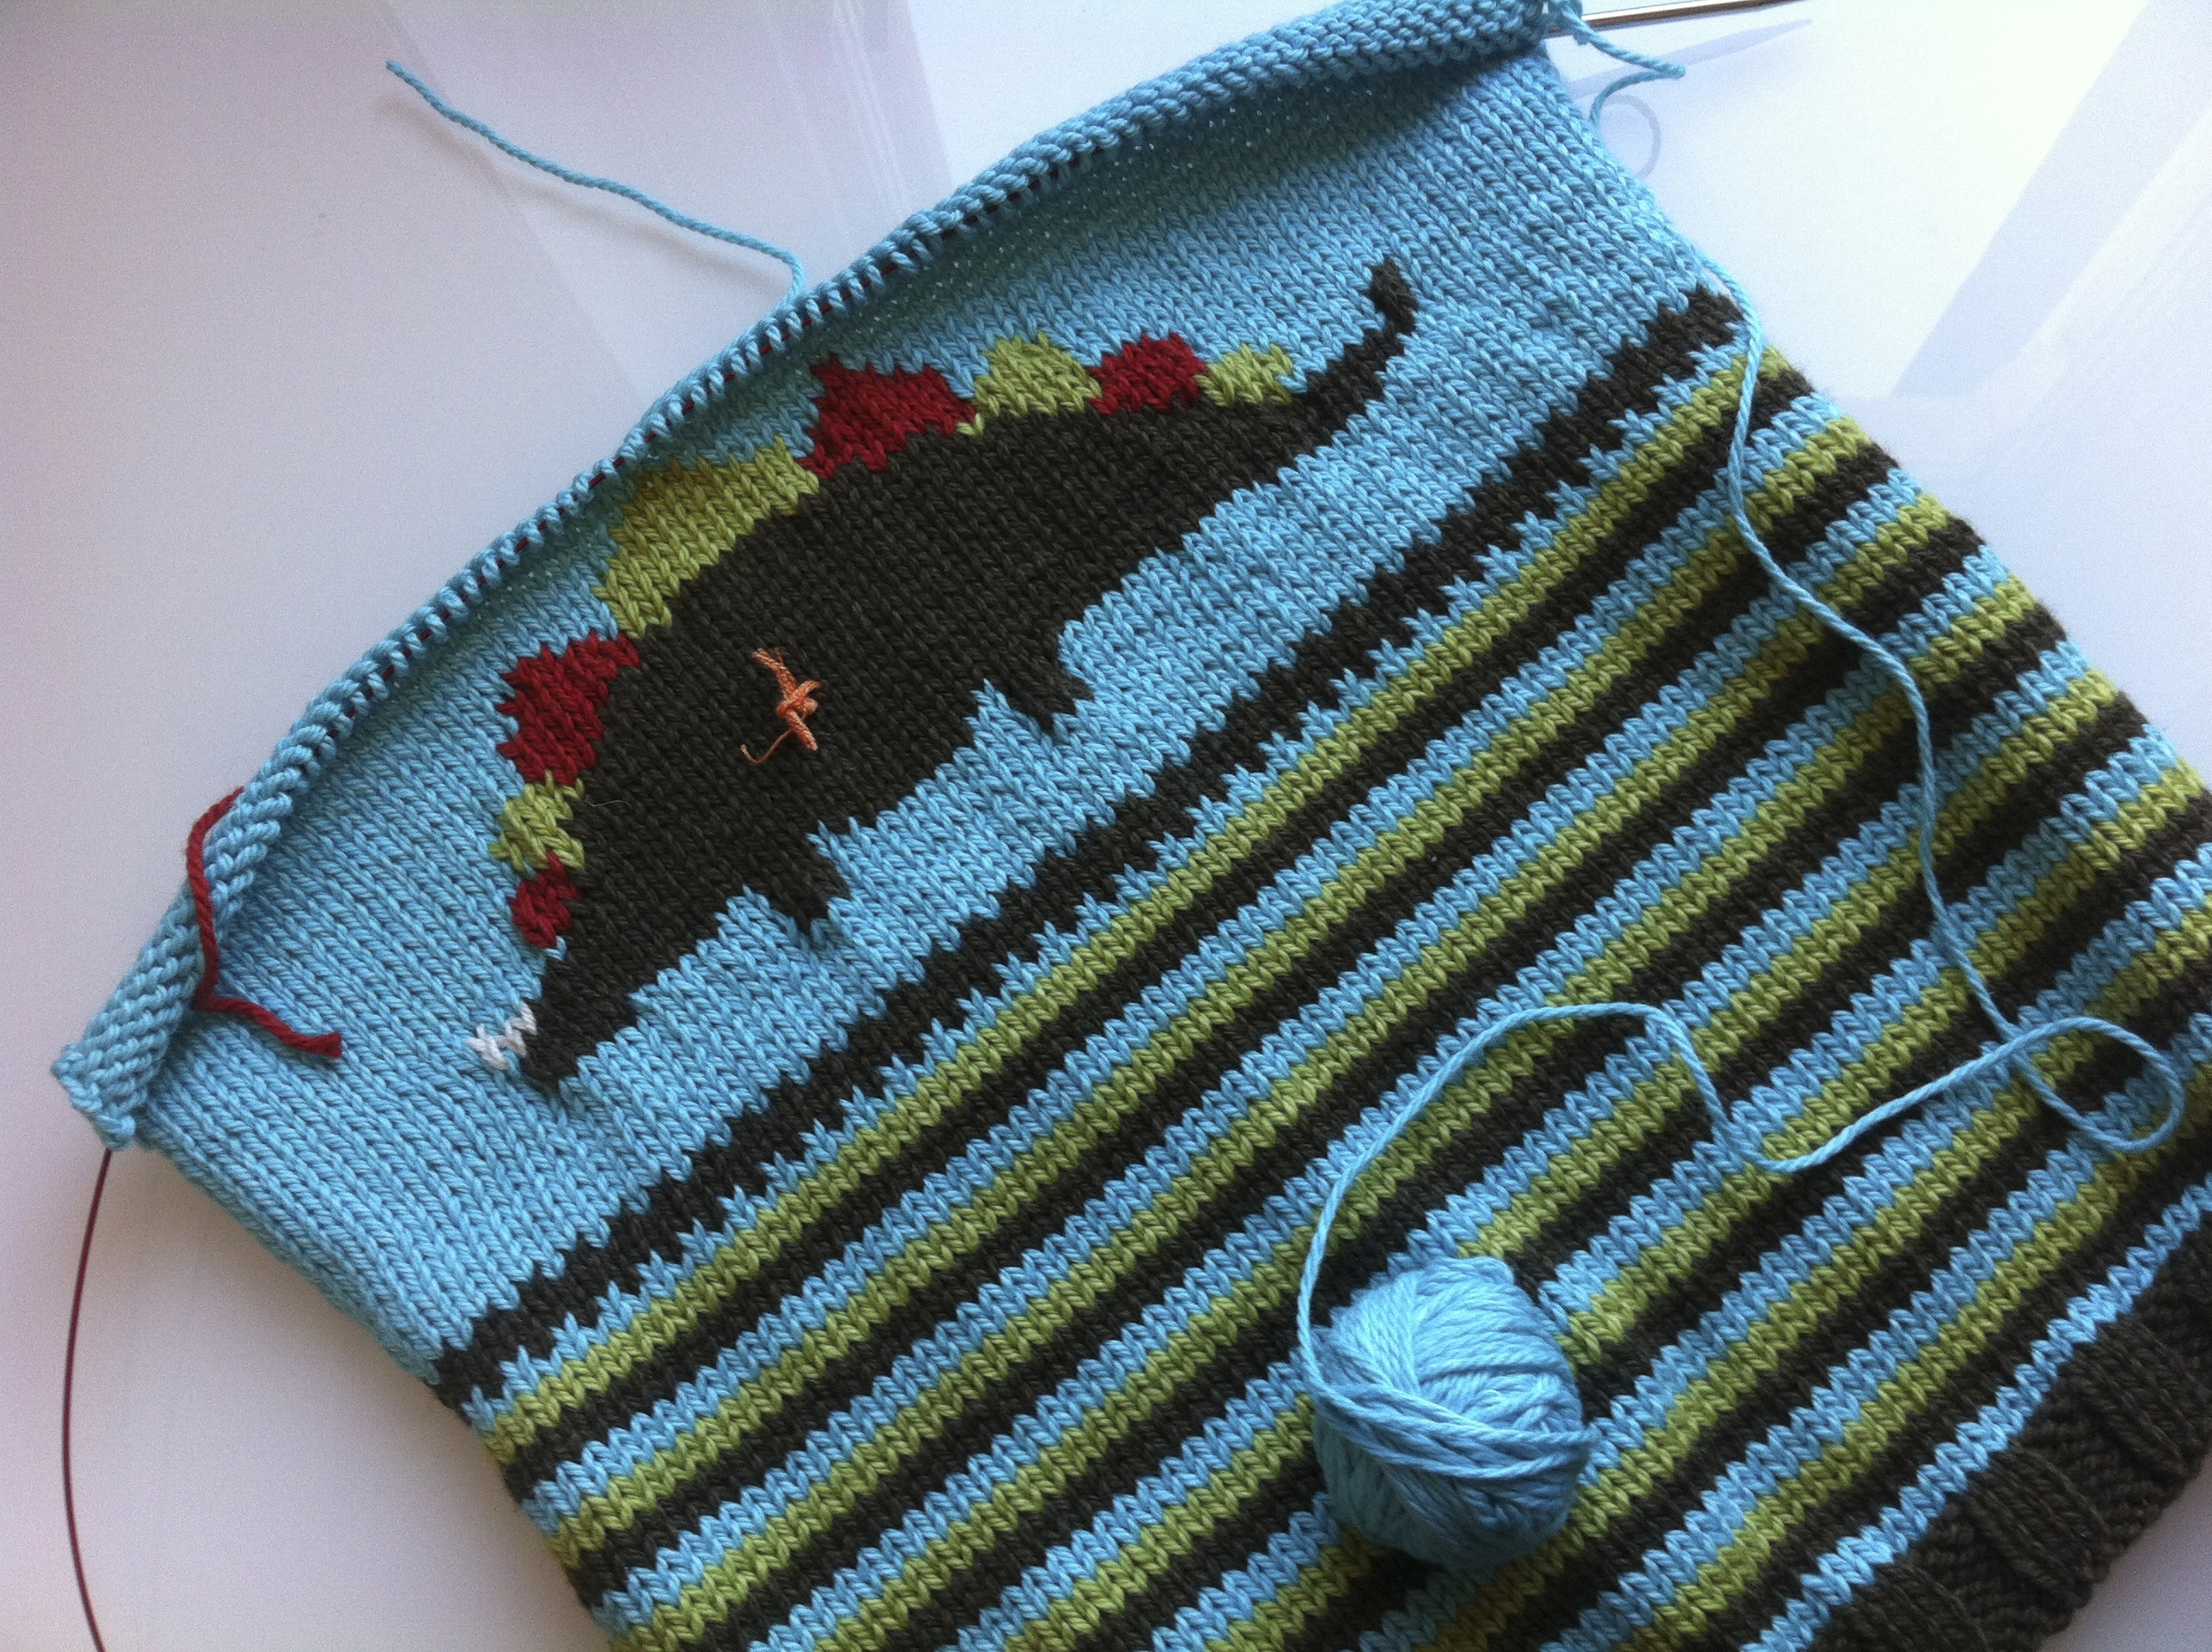 The intarsia dinosaur is now complete and I'm rushing to get the front of the sweater finished so I can move on to the sleeves.